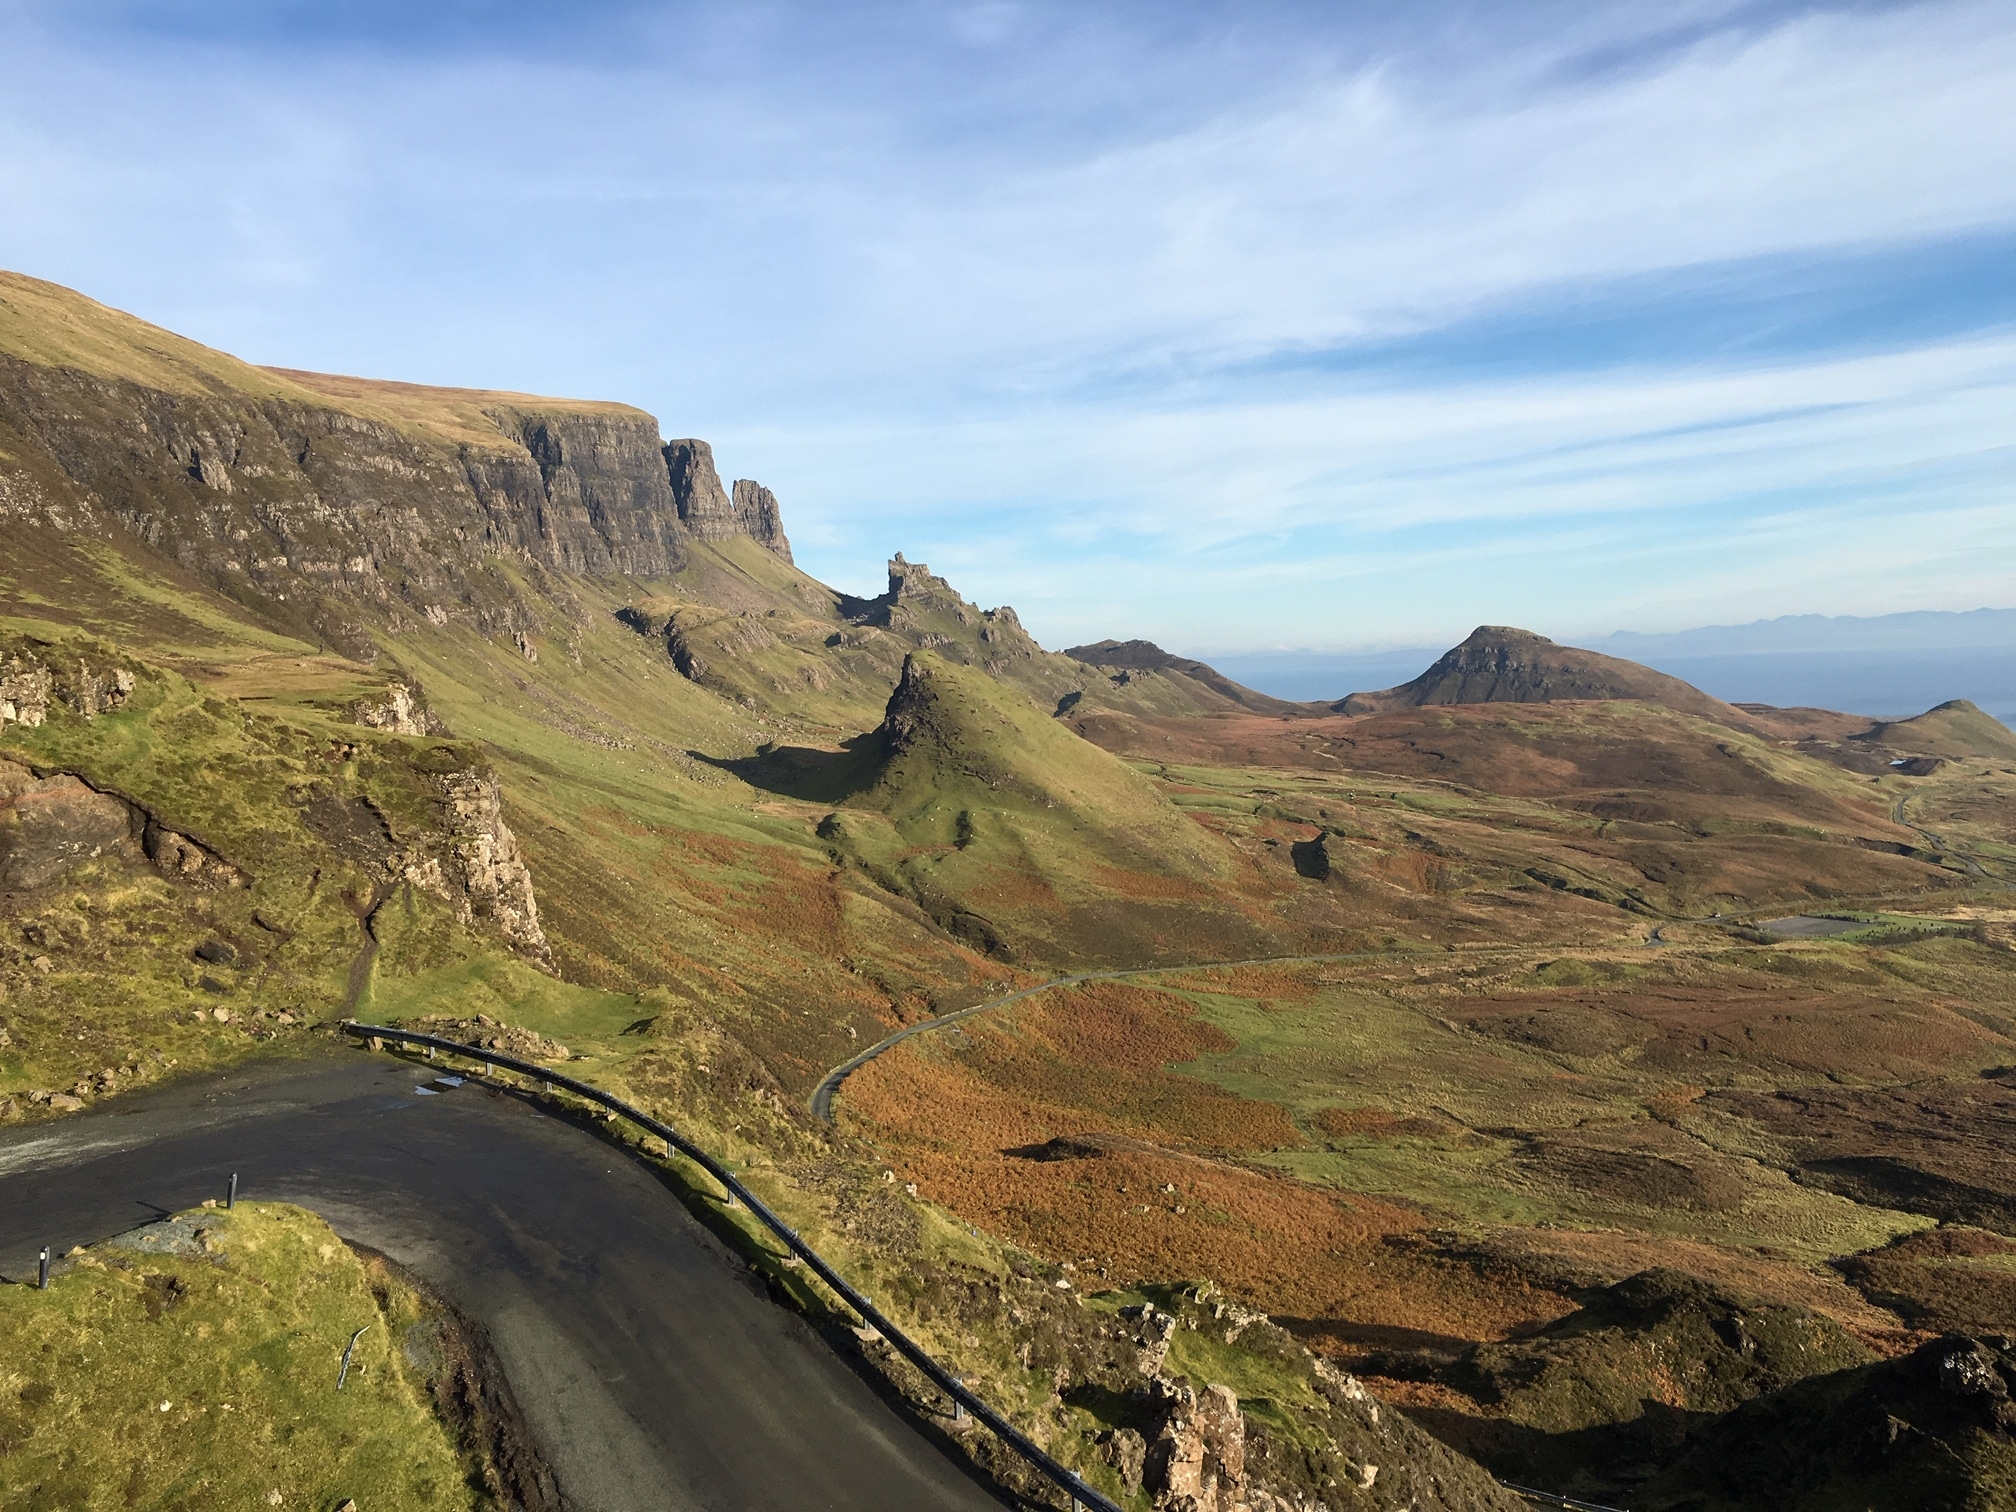 The road up the Quiraing